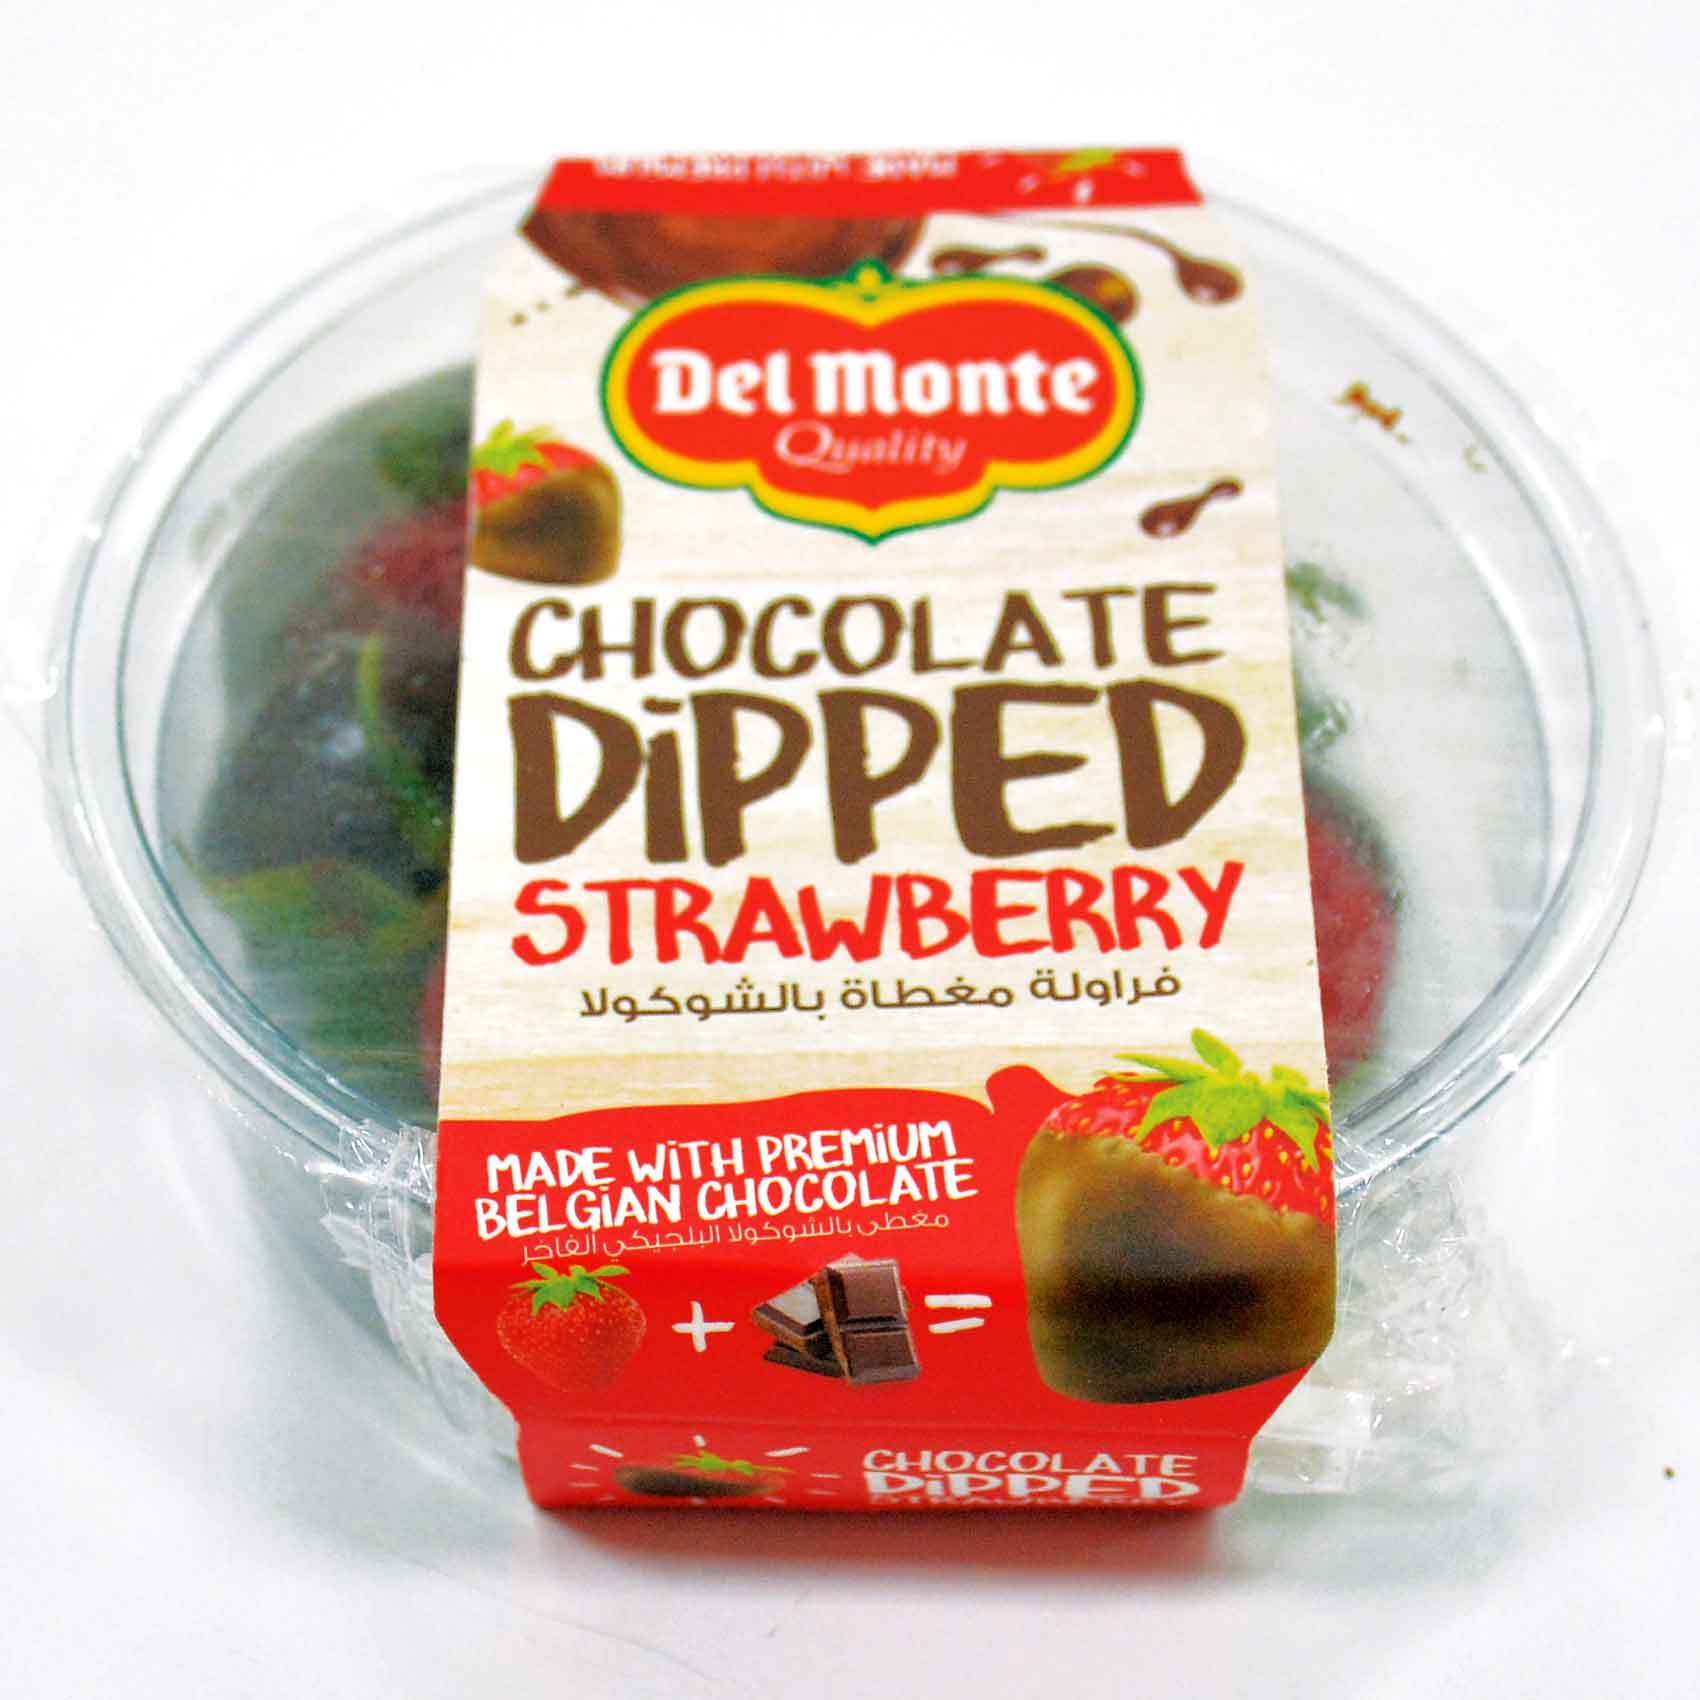 DM CHOCOLATE COVERED STRAWBERRY